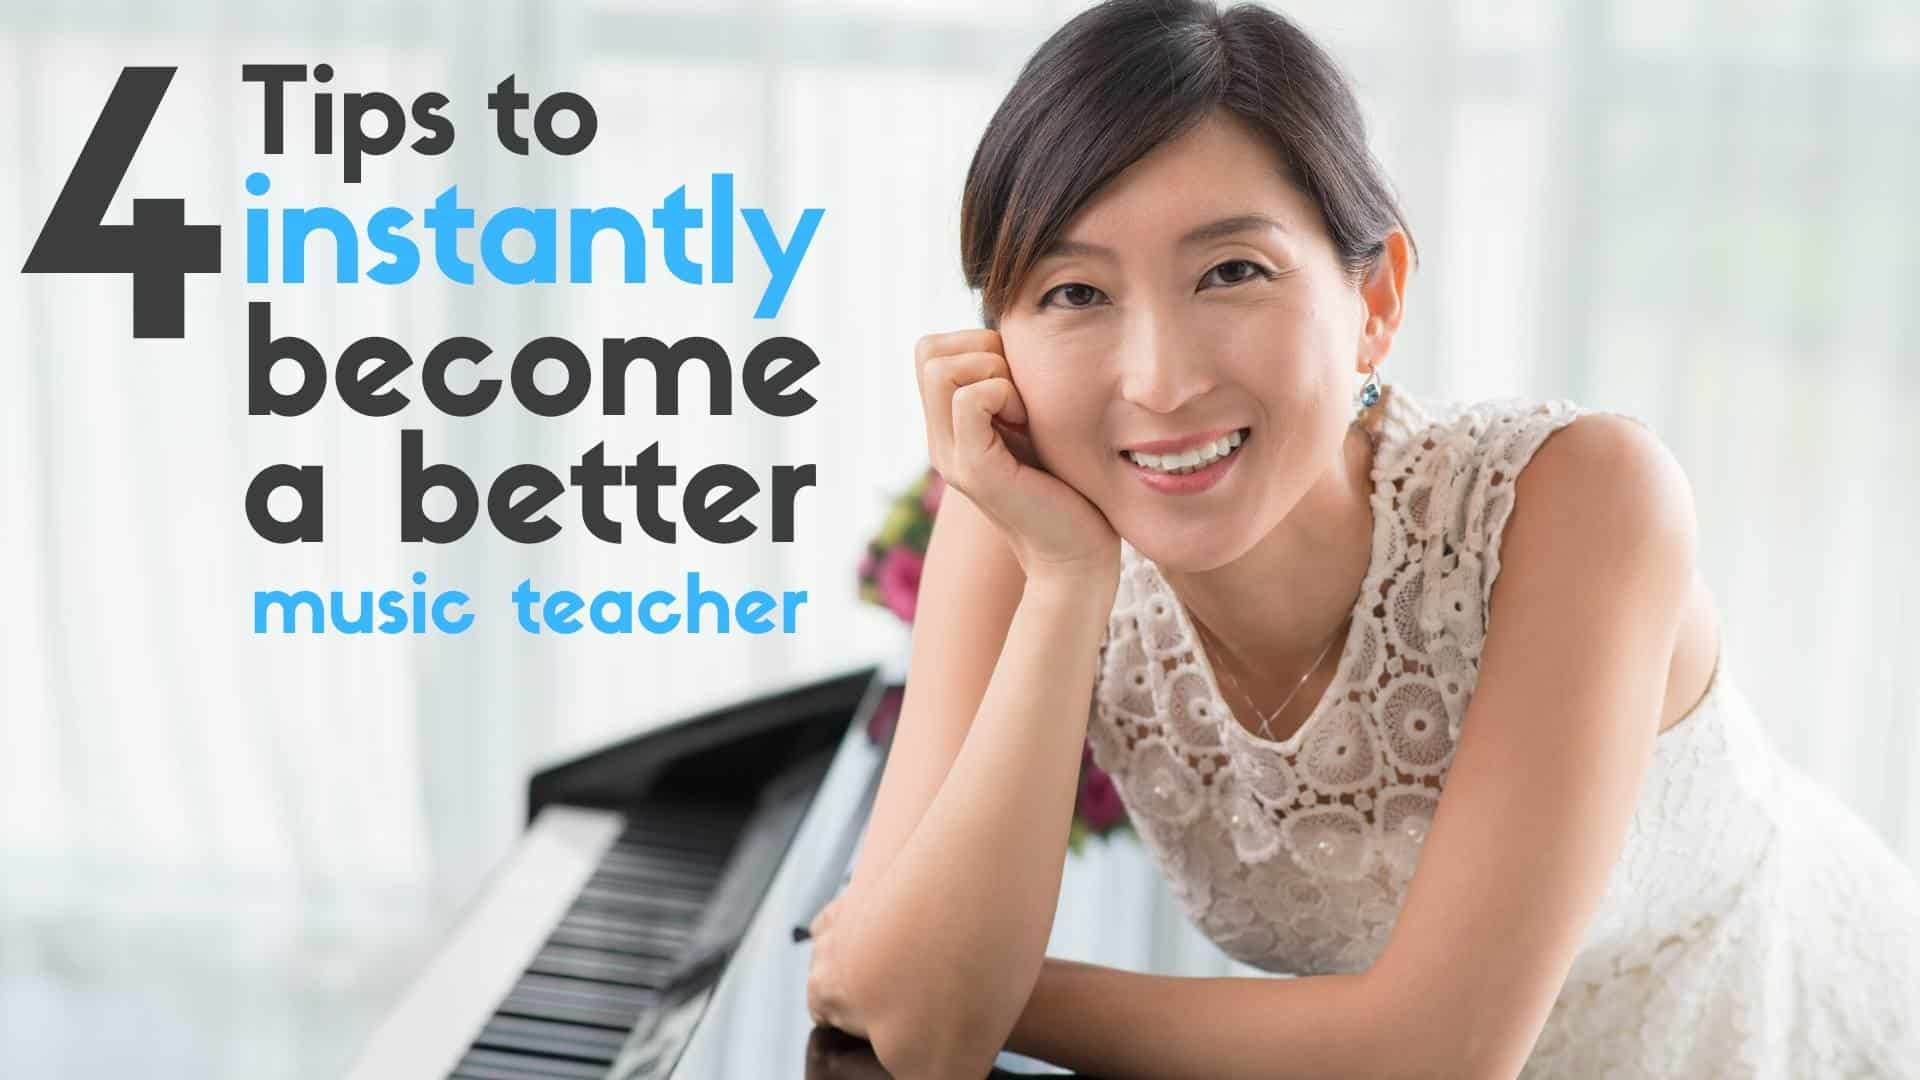 4 Tips to Instantly Become a Better Music Teacher - 4 Tips To Instantly Become a Better Music Teacher